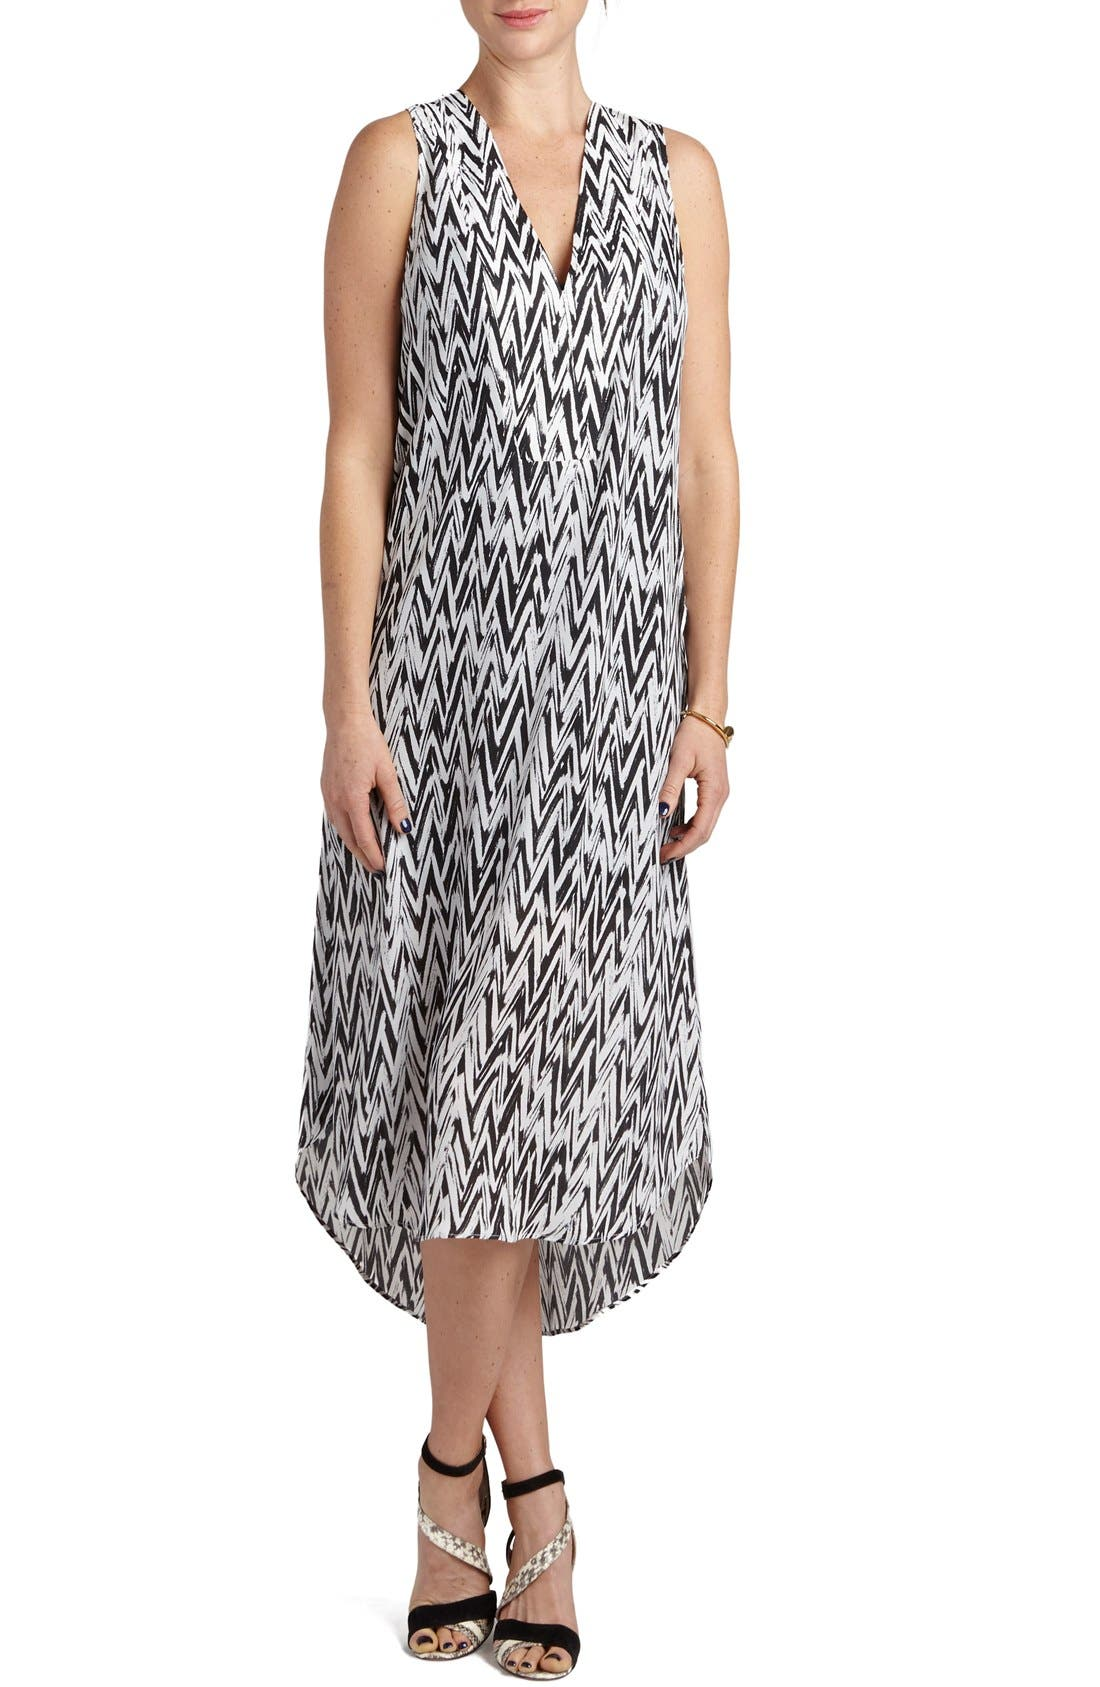 Main Image - Loyal Hana 'January' Print Maternity/Nursing High/Low Dress